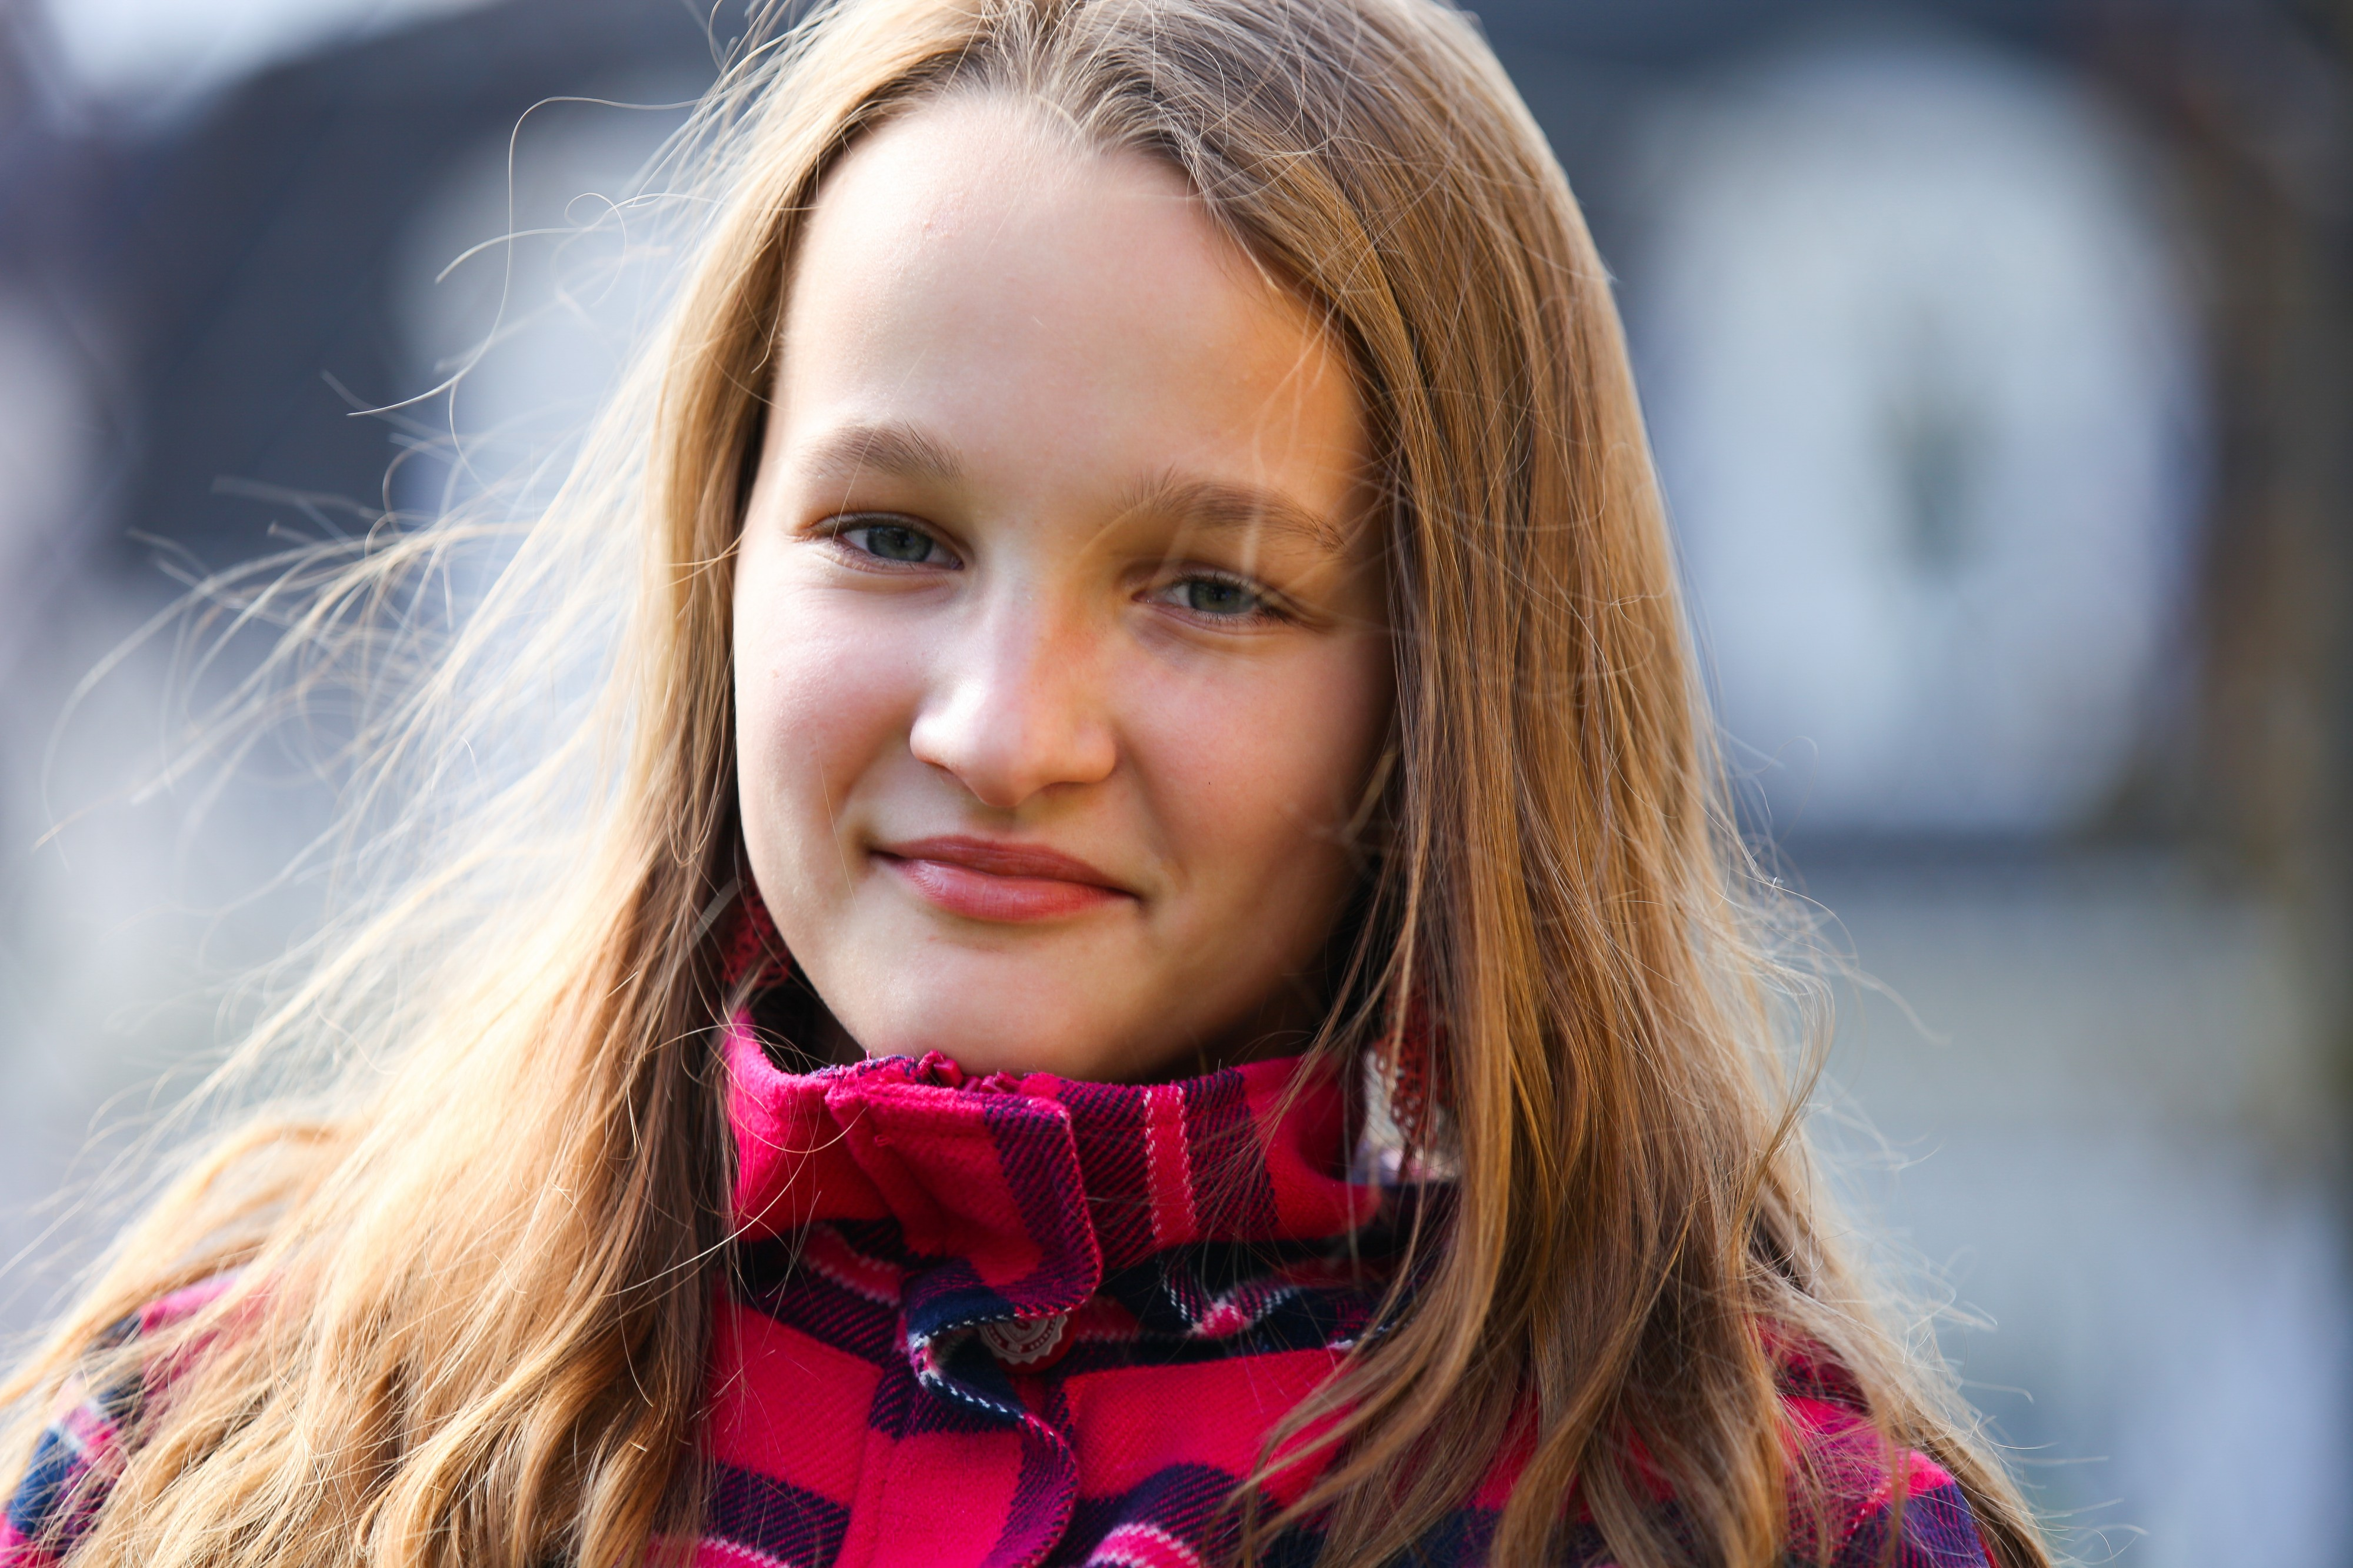 an astonishingly beautiful young Catholic girl photographed in September 2013, picture 18/34